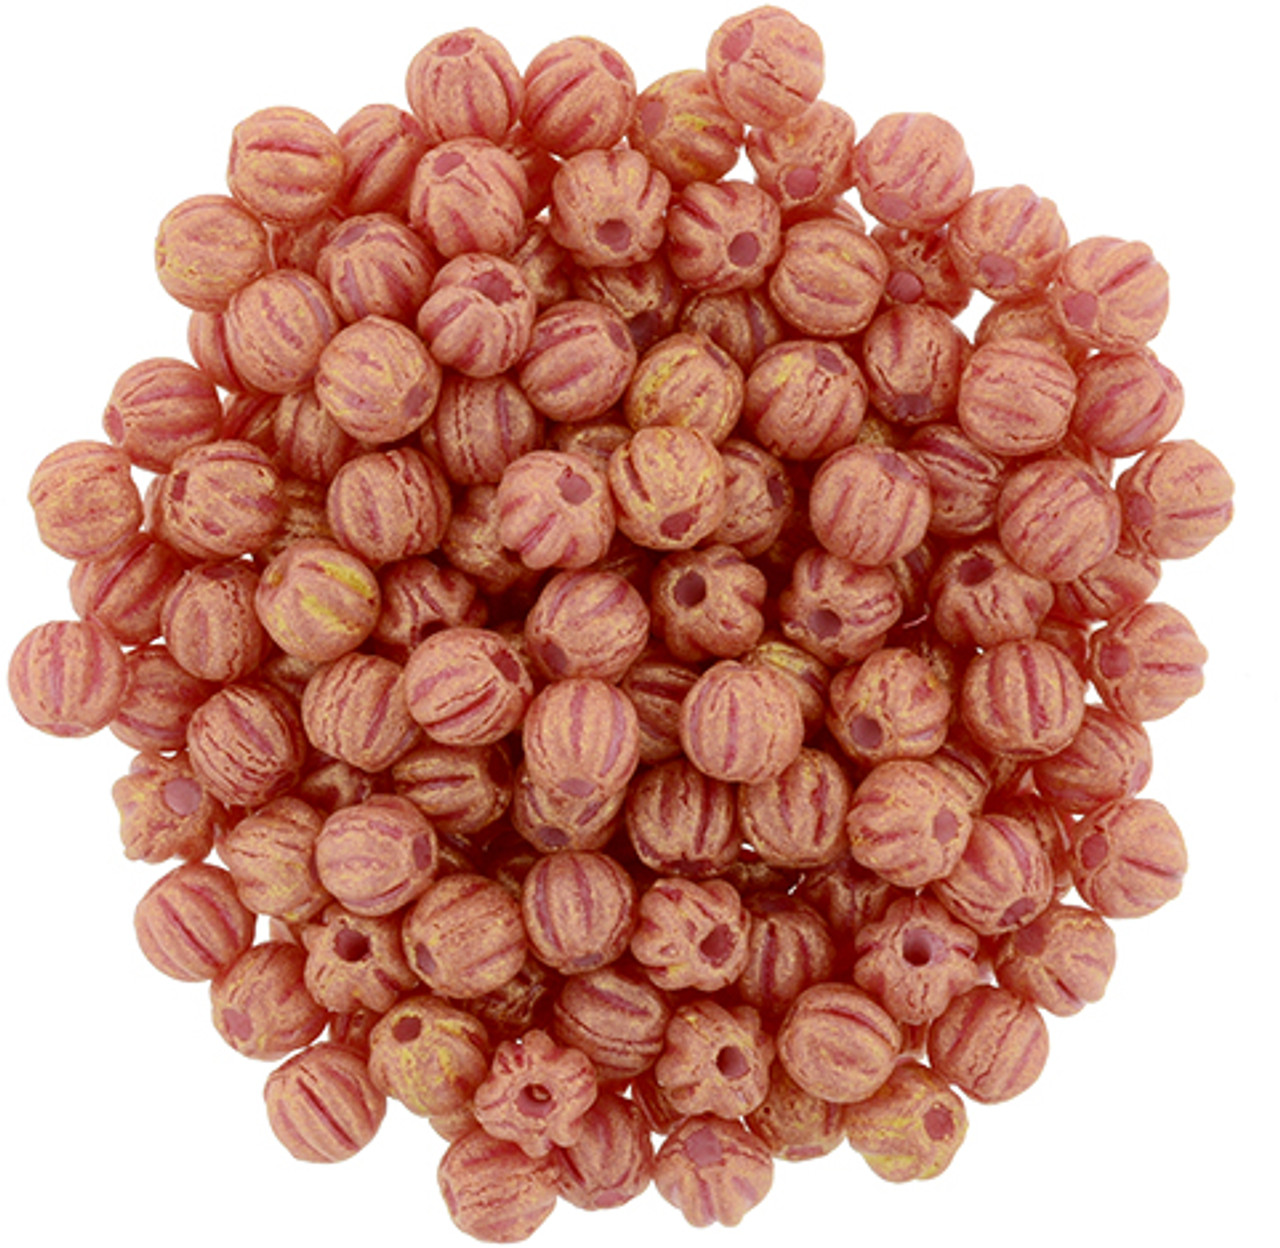 3mm Melon - Pacifica Strawberry (100 Beads) 03-PS1002